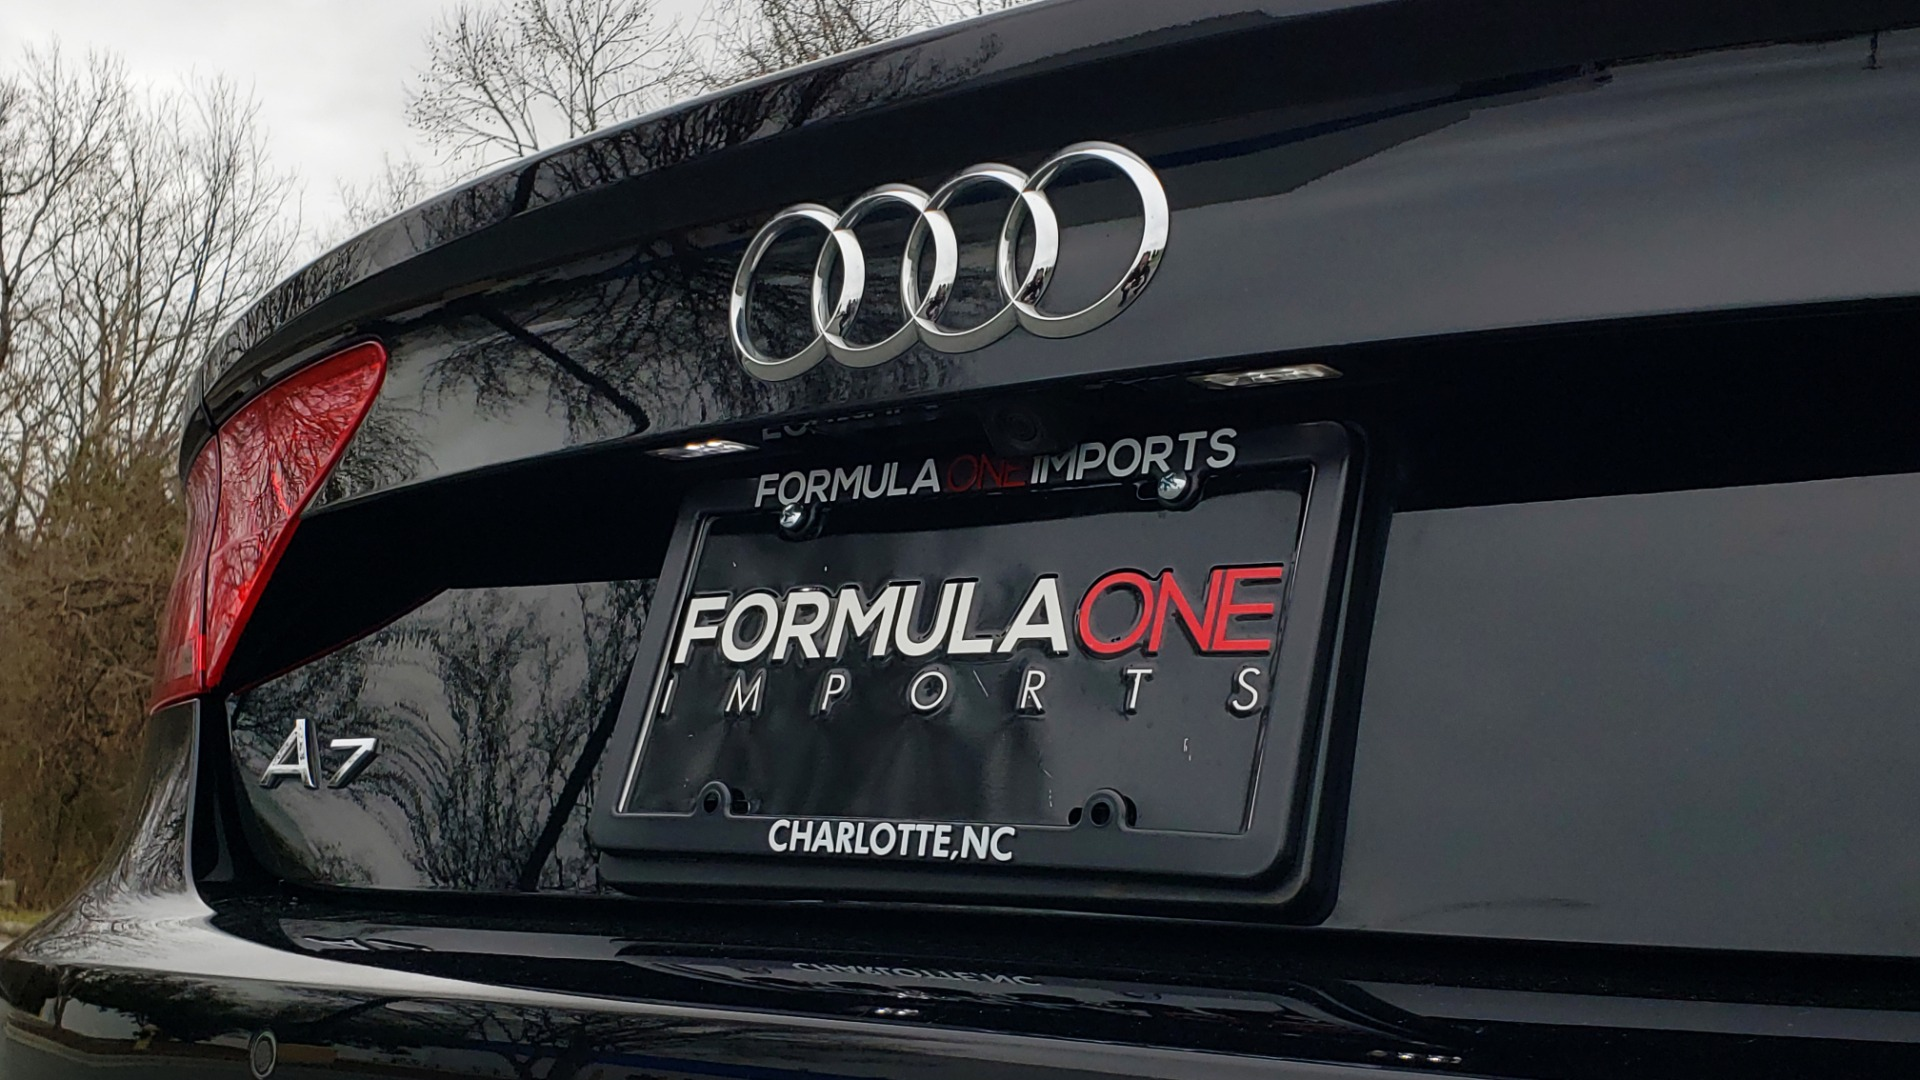 Used 2014 Audi A7 3.0 PRESTIGE / NAV / SUNROOF / BOSE / REARVIEW for sale Sold at Formula Imports in Charlotte NC 28227 35